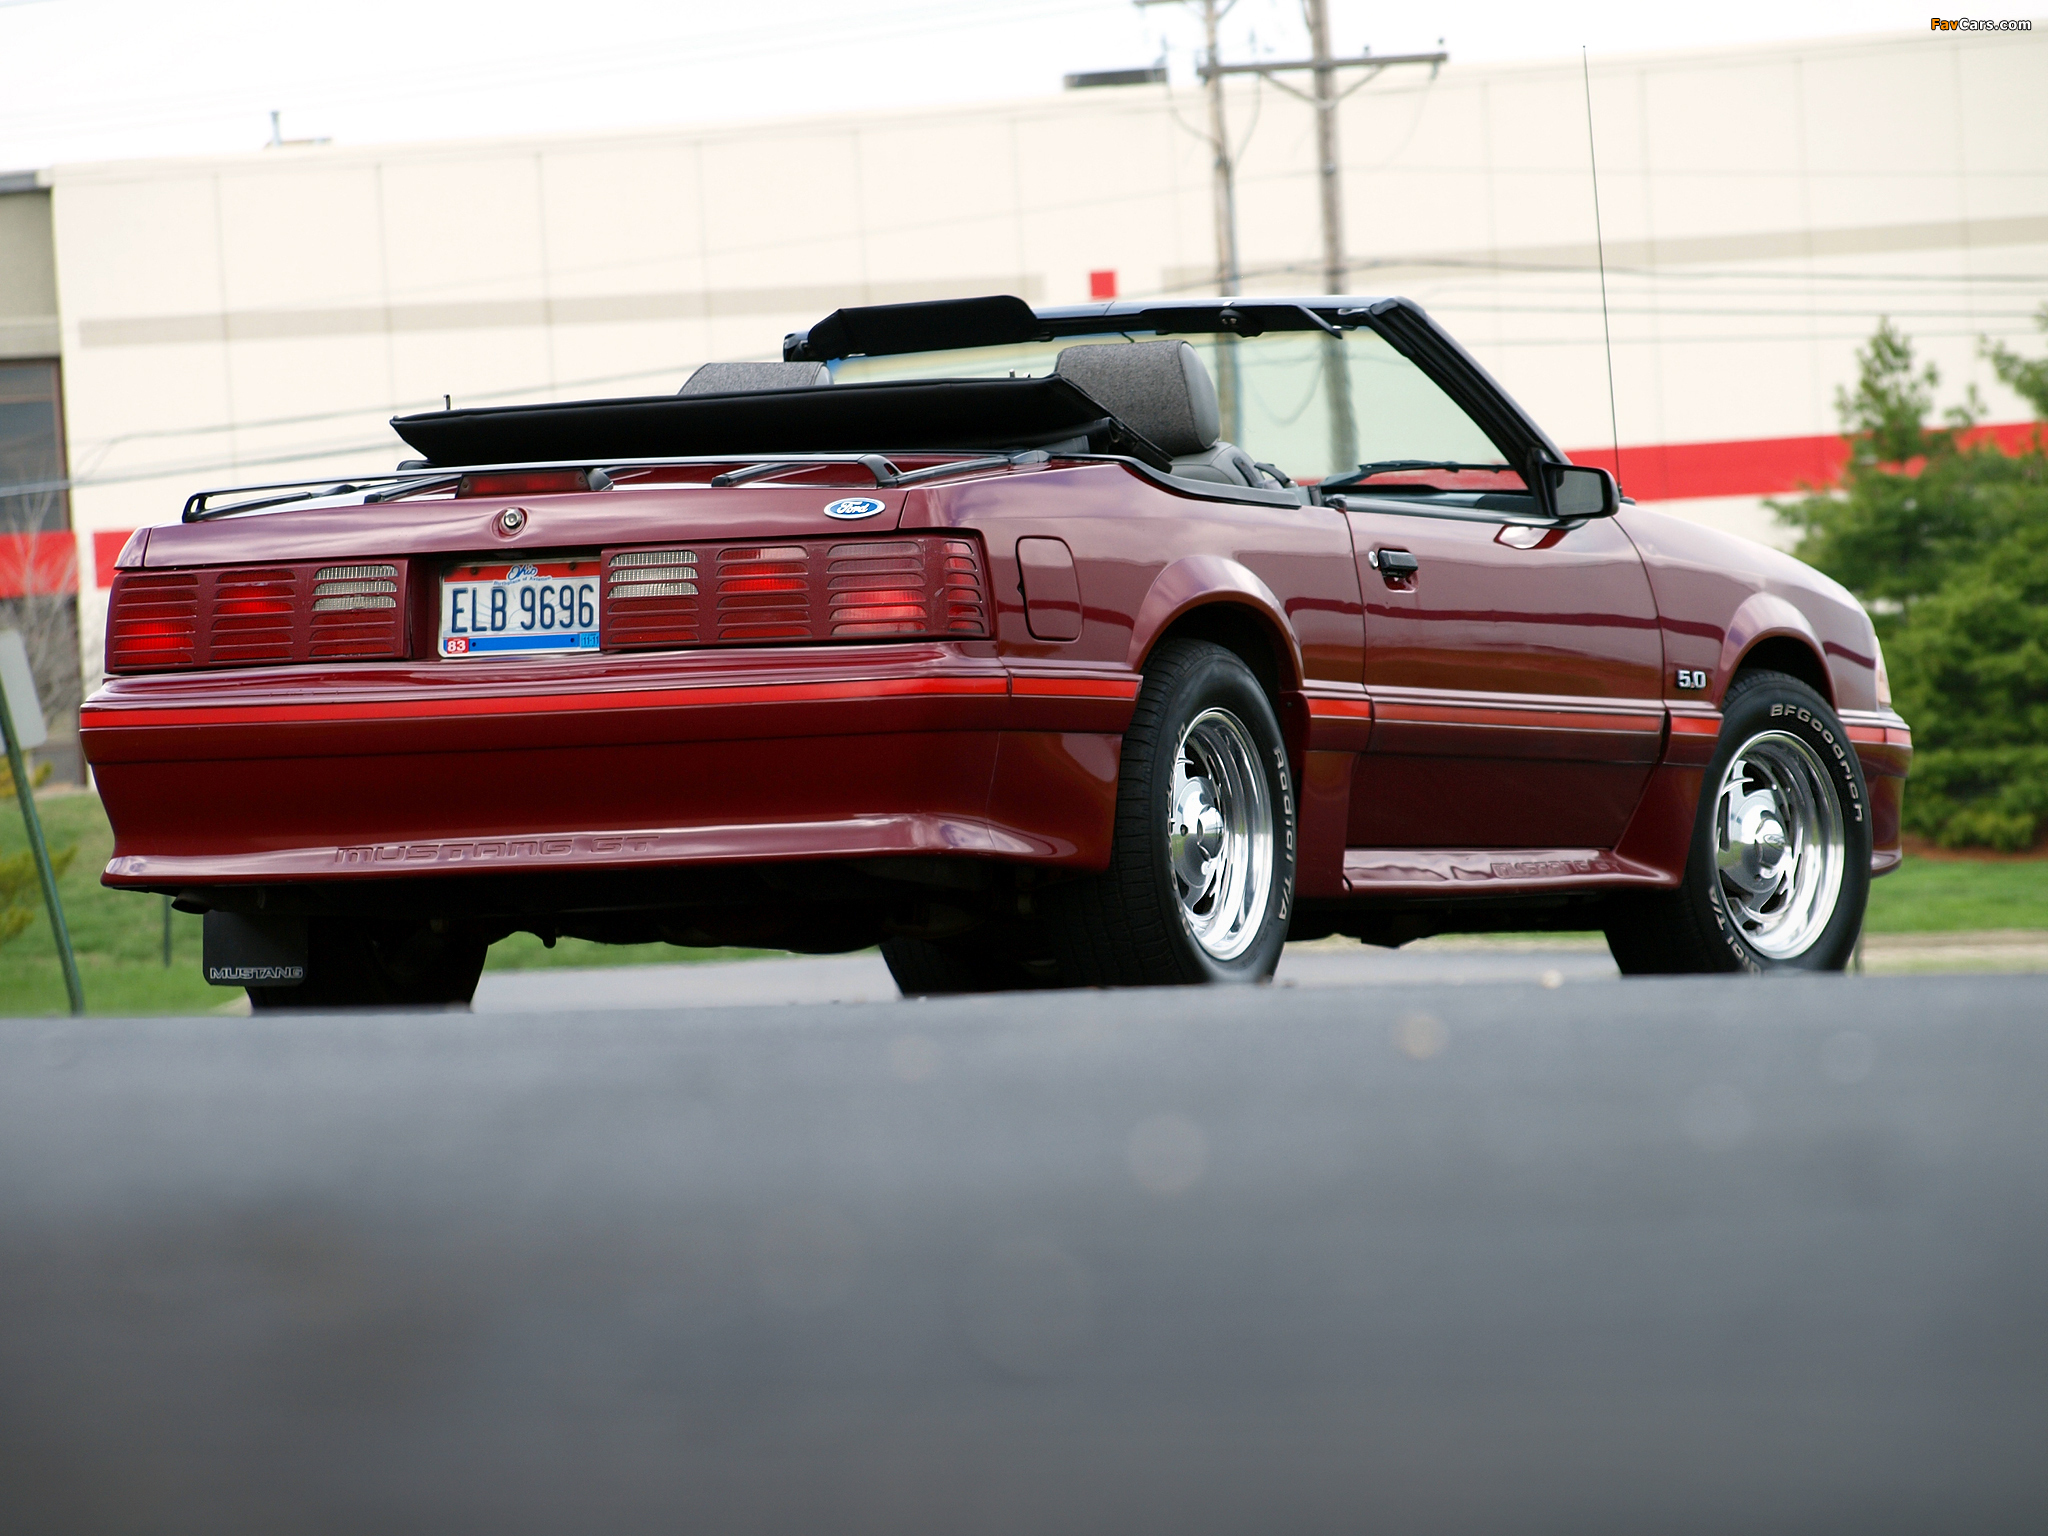 images of mustang gt 5 0 convertible 1987 93 2048x1536. Black Bedroom Furniture Sets. Home Design Ideas